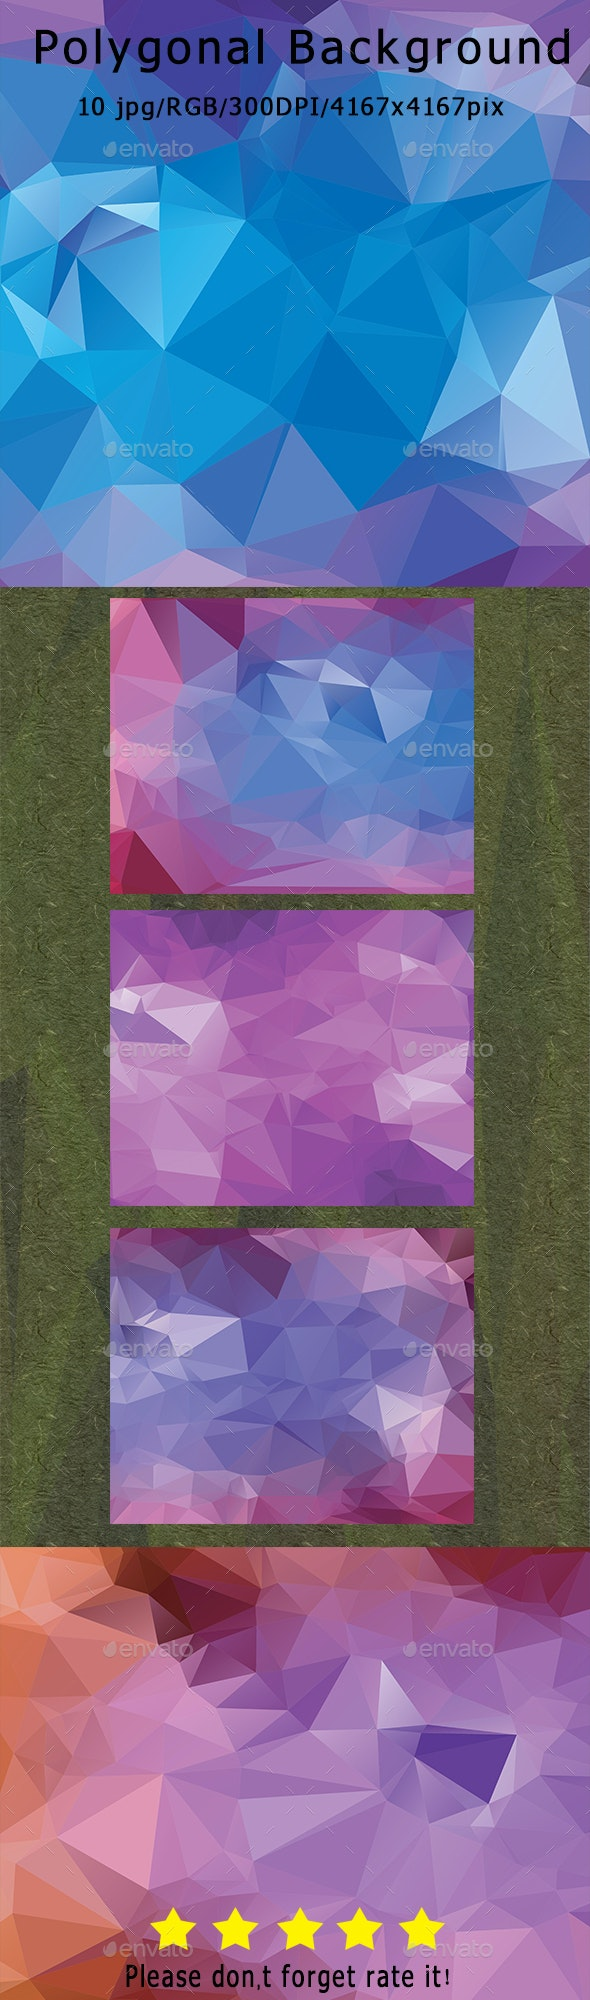 Polygonal Backgrounds - Backgrounds Graphics